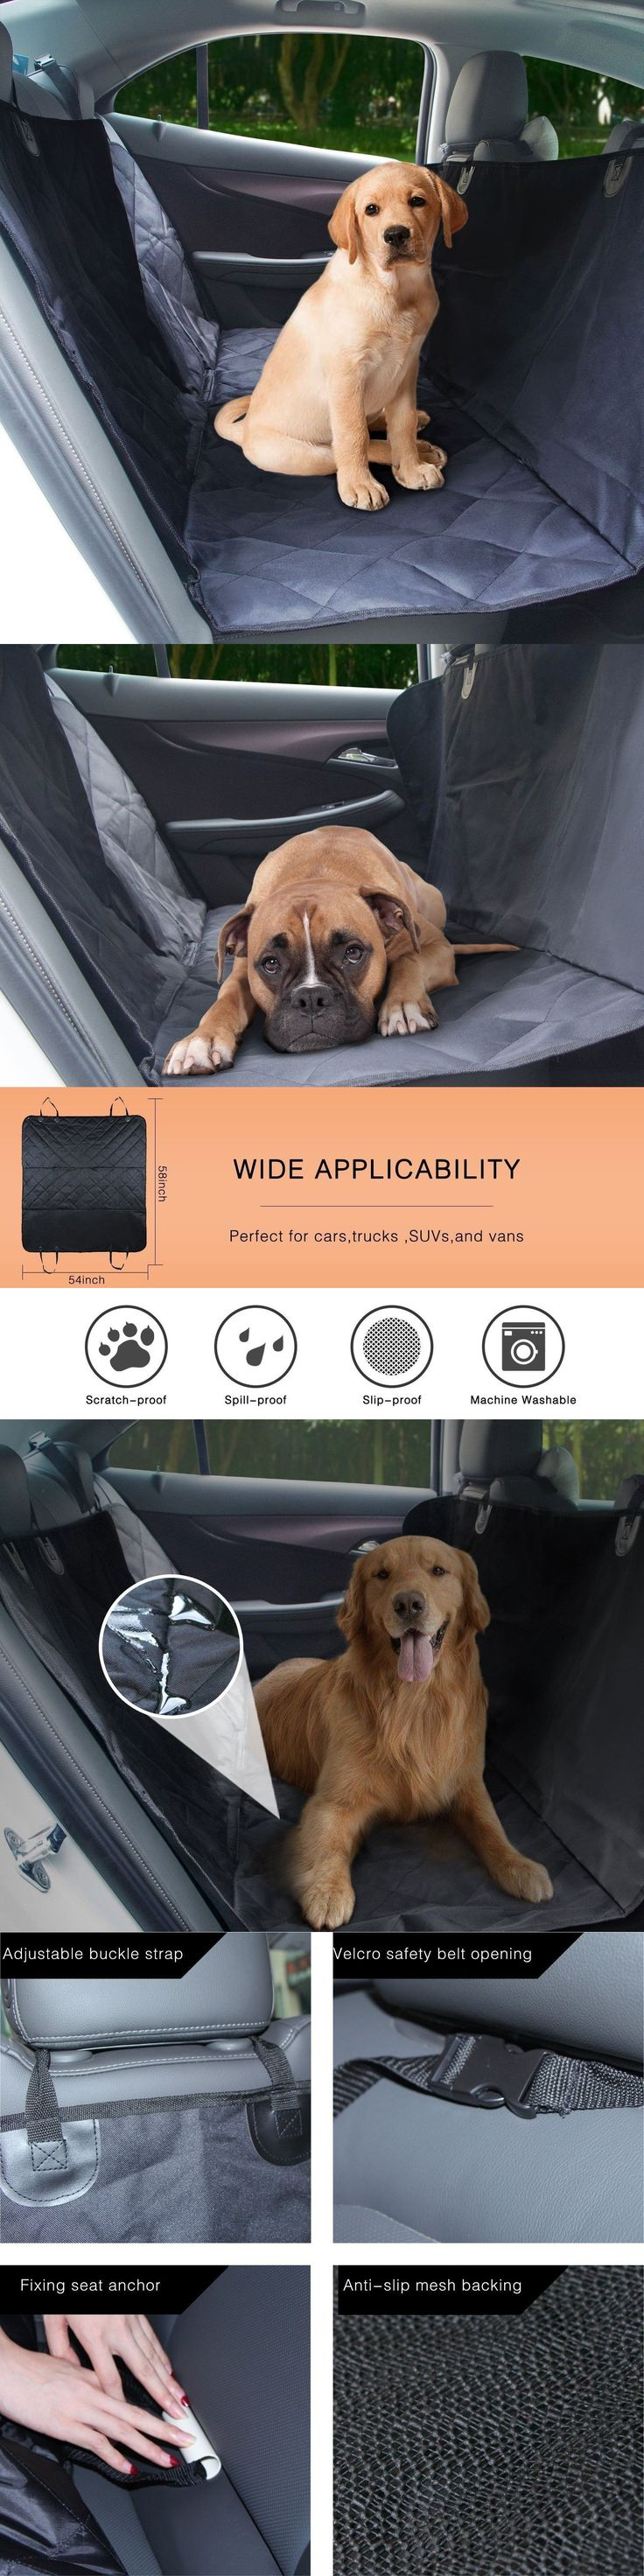 Car Seat Covers 117426: Rear Car Seat Protector Back Cover Waterproof Organizer For Dog Pet Cat Mats Sit -> BUY IT NOW ONLY: $33.82 on eBay!